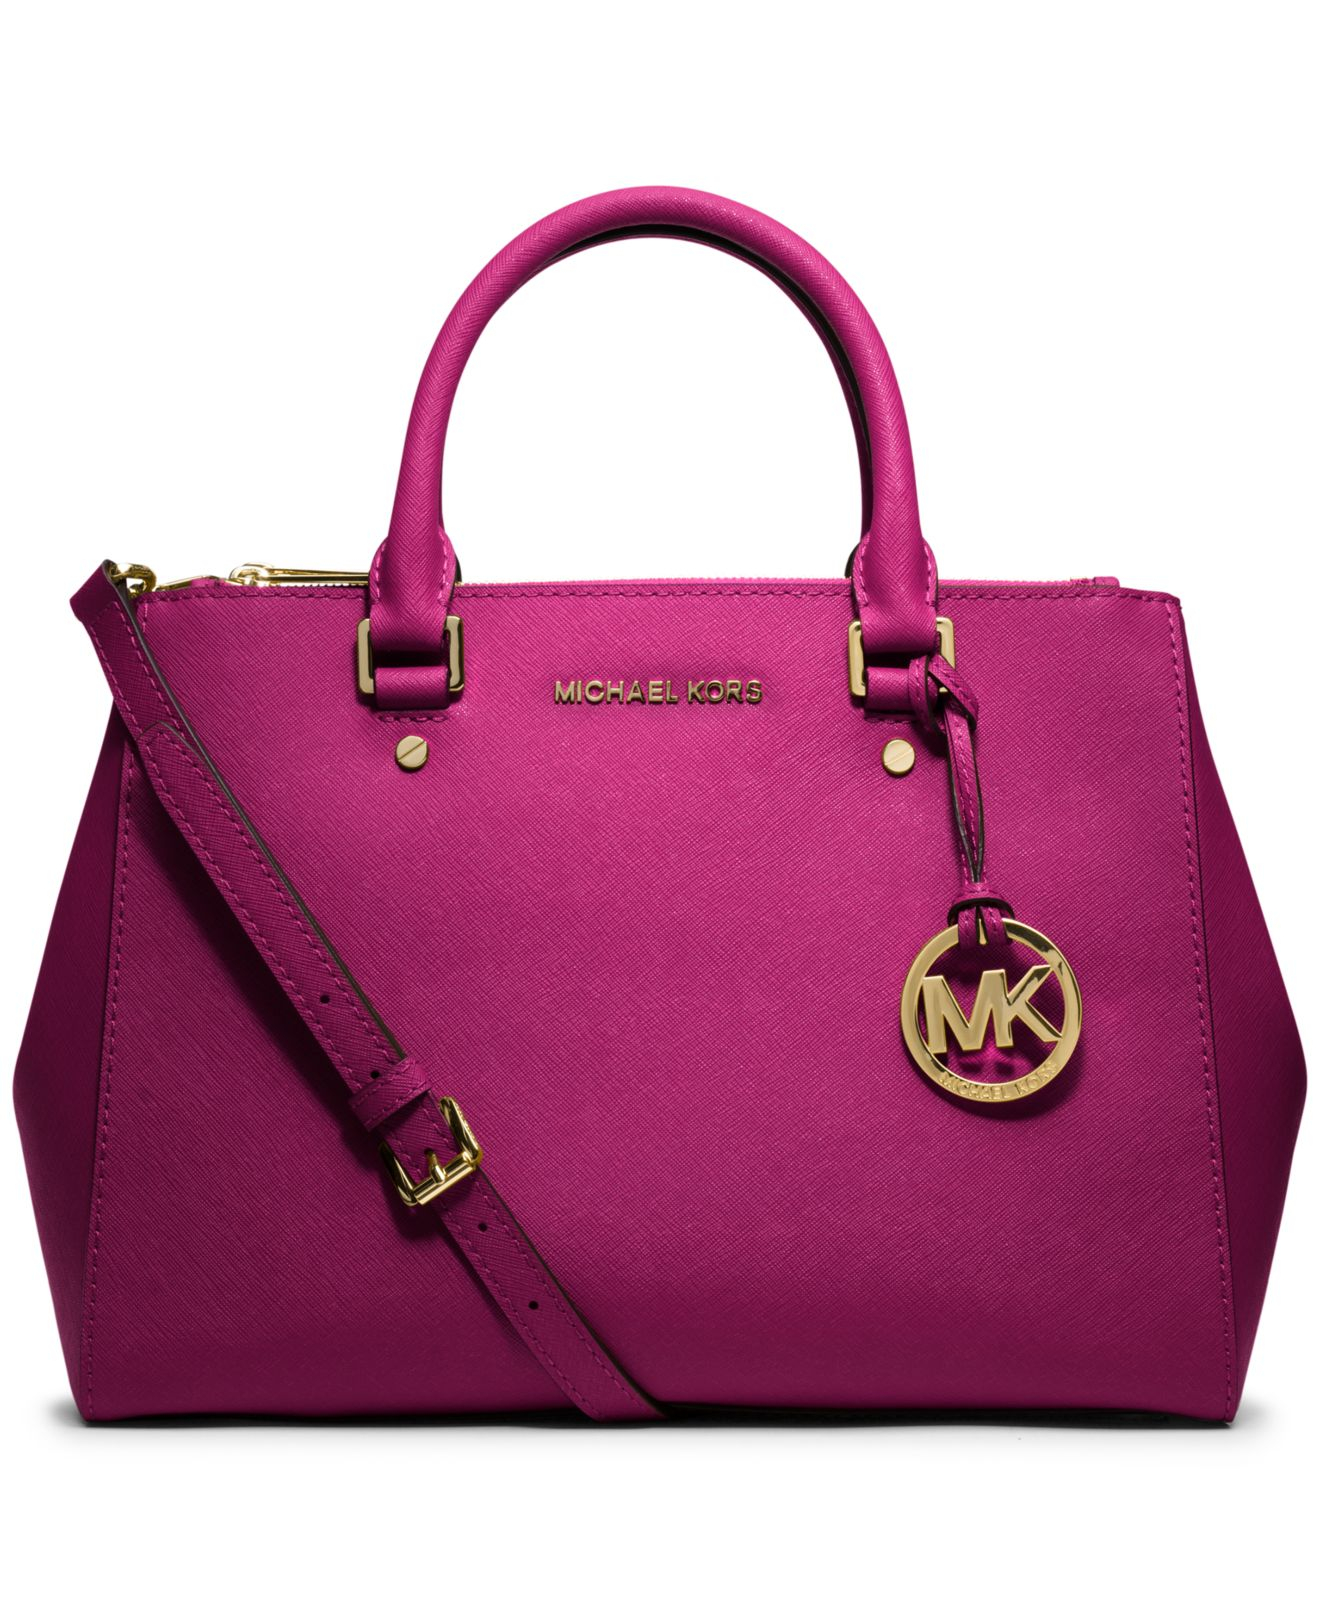 michael kors michael sutton medium satchel in pink lyst. Black Bedroom Furniture Sets. Home Design Ideas